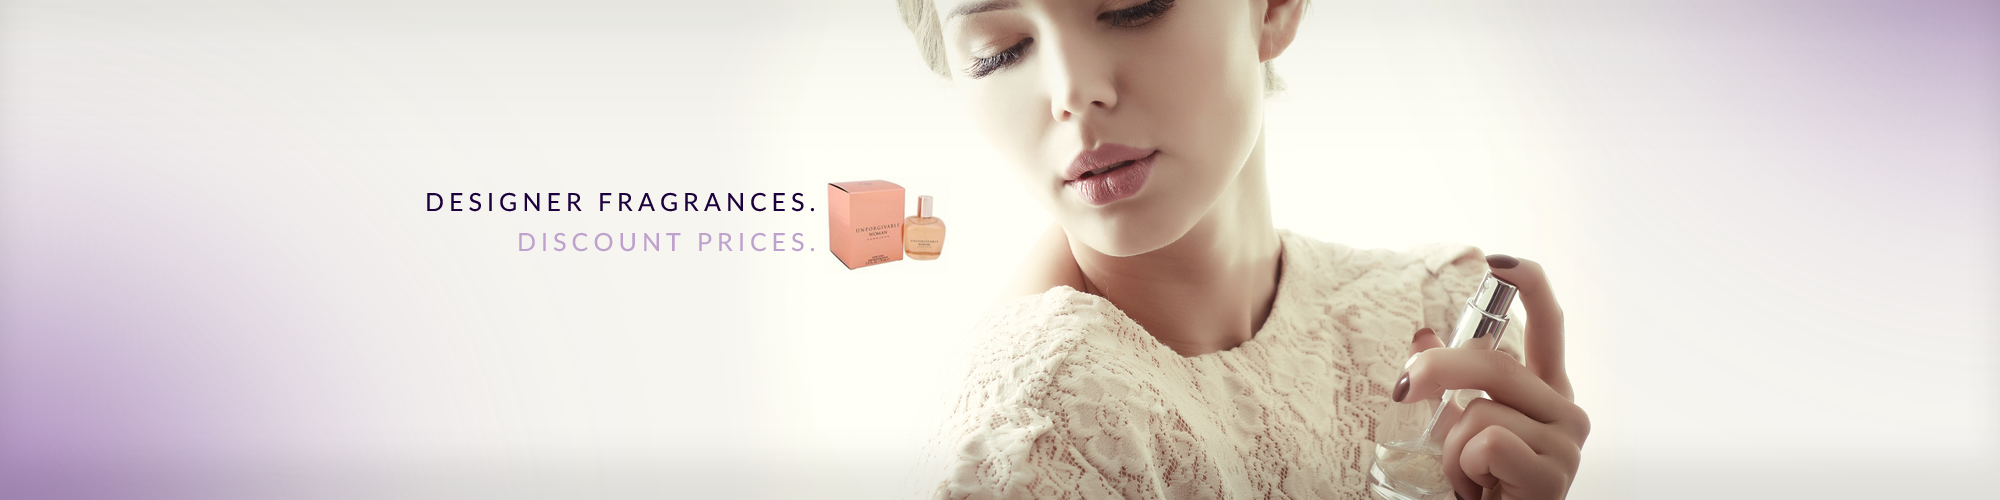 Designer Fragrances. Discount Prices. start shopping